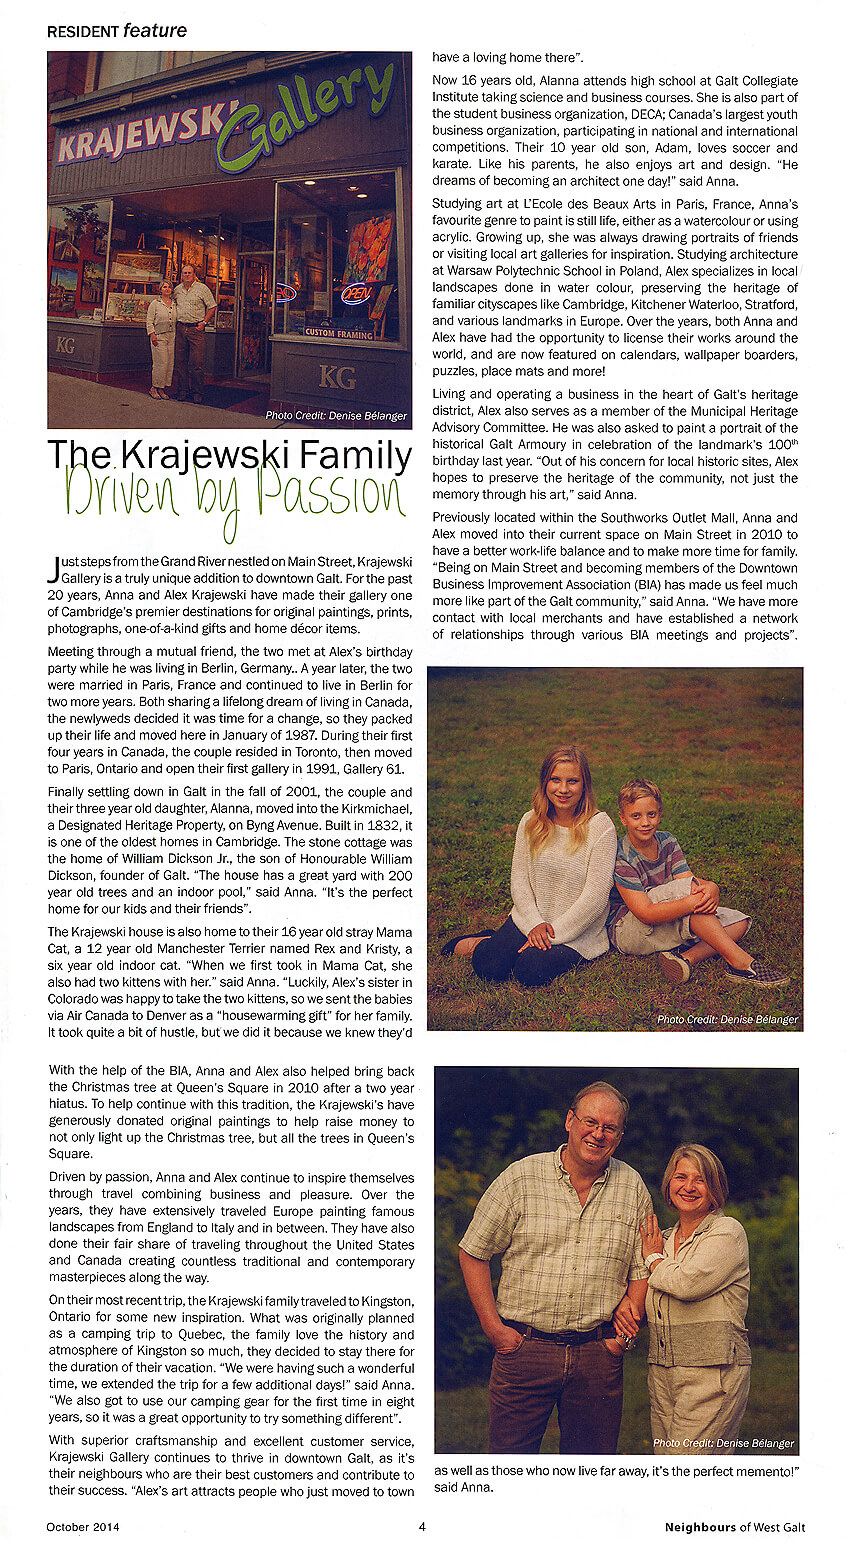 Neighbours of West Galt cover article featuring Alex & Anna Krajewski